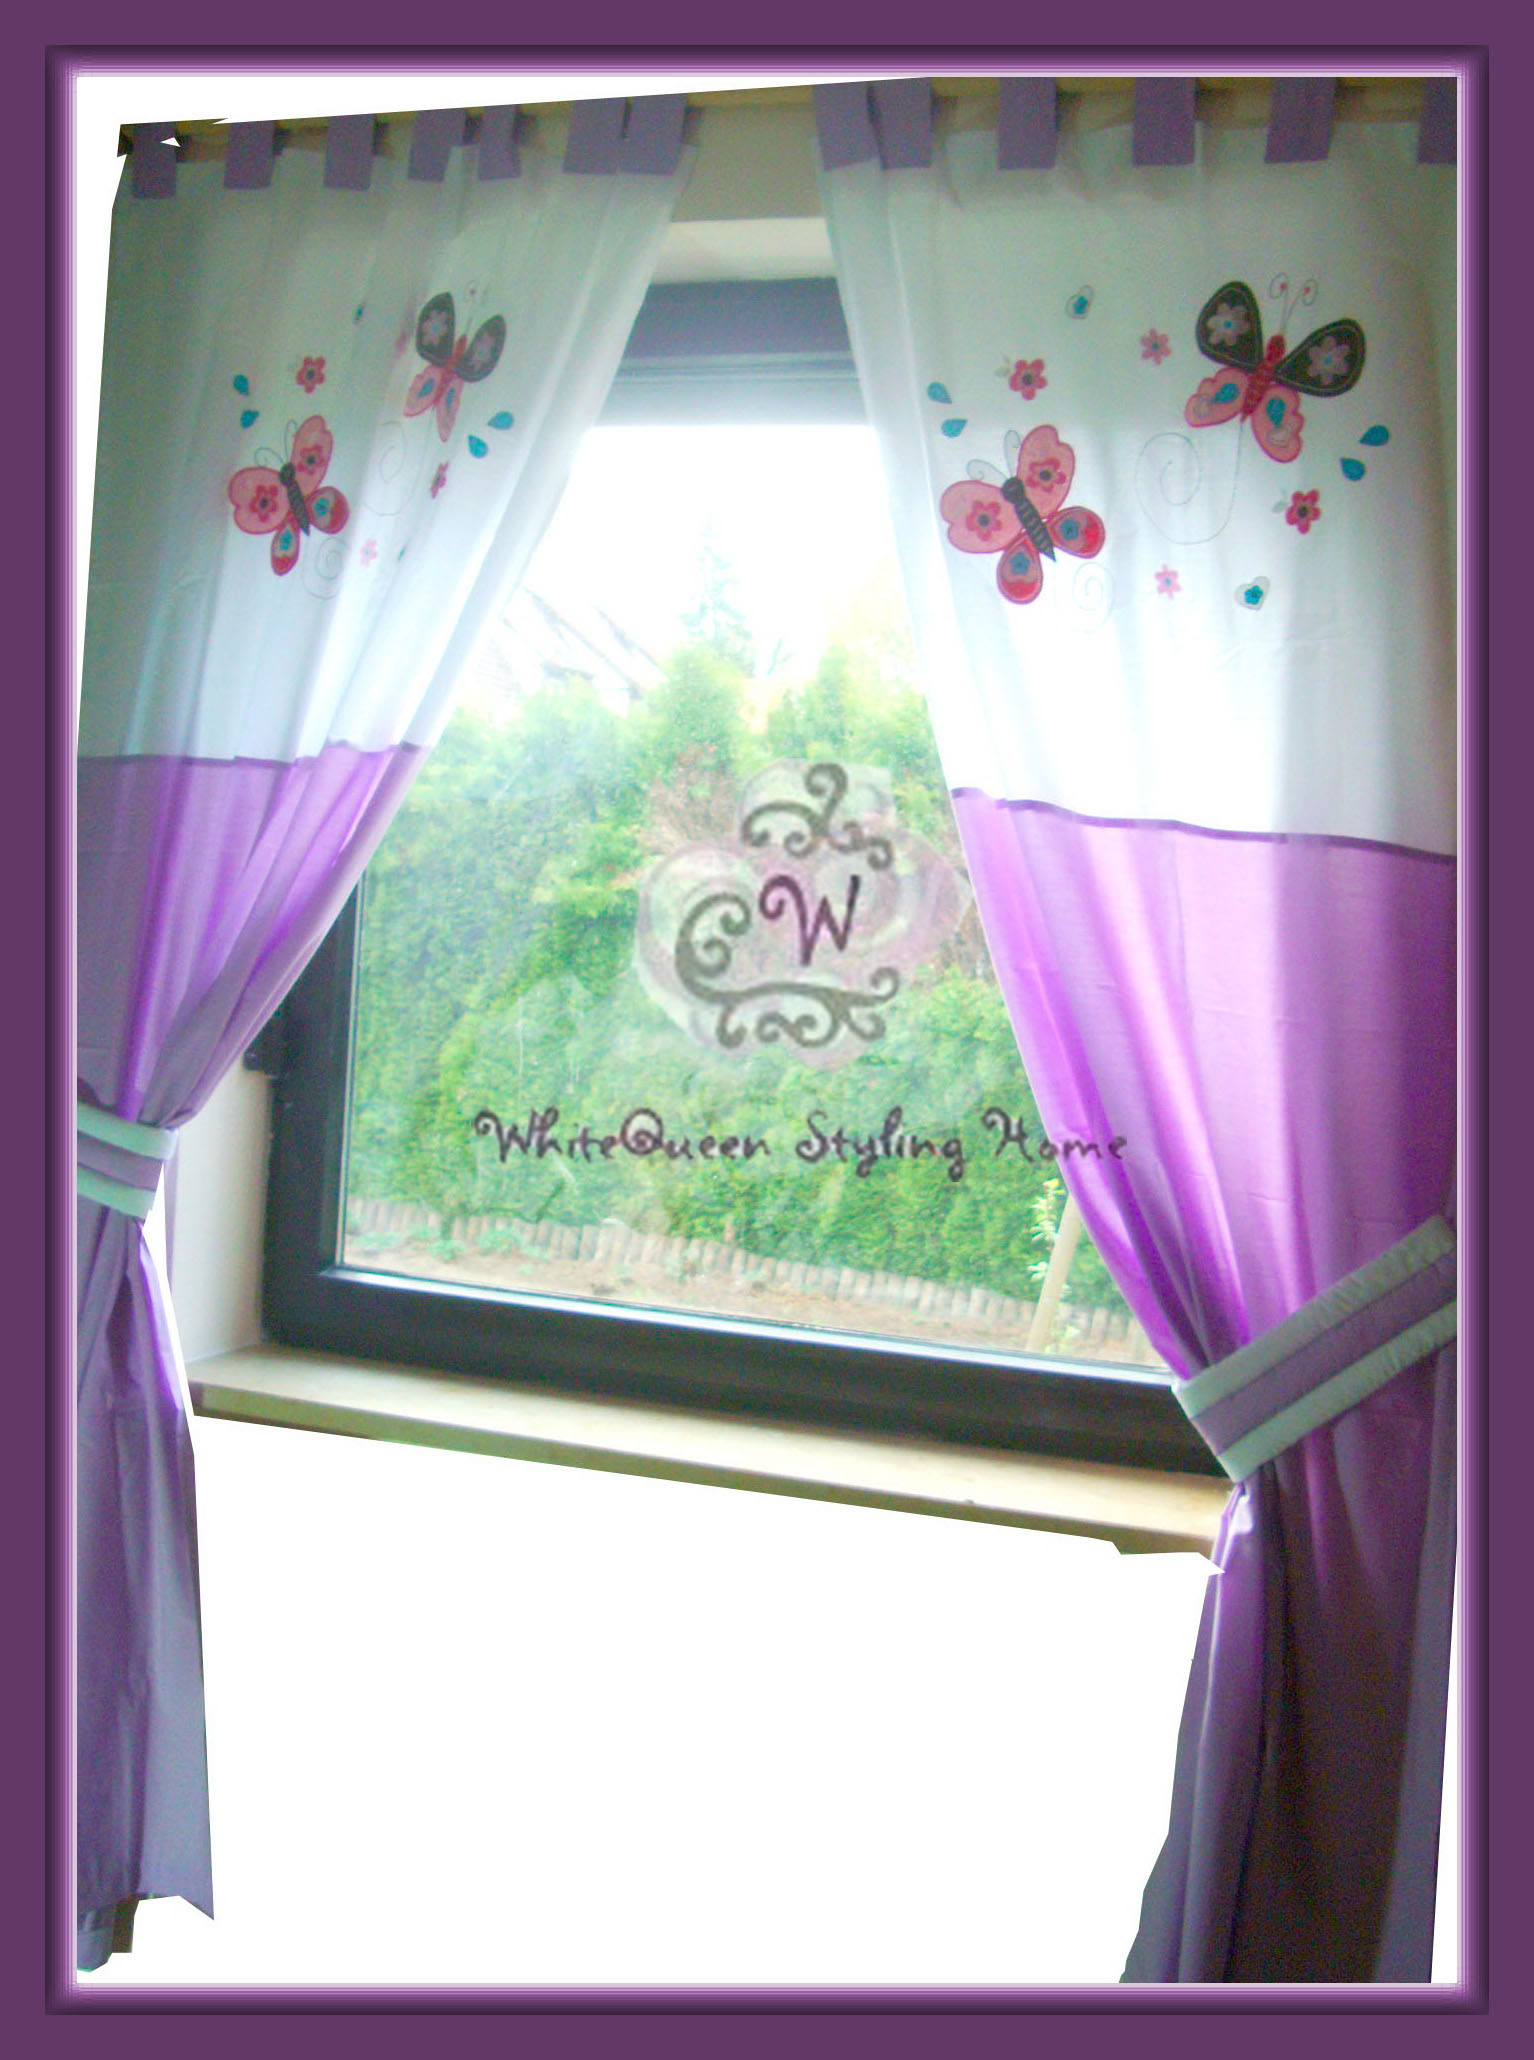 baby kinderzimmer vorhang gardine schmetterlinge l la girly butterfly curtains ebay. Black Bedroom Furniture Sets. Home Design Ideas